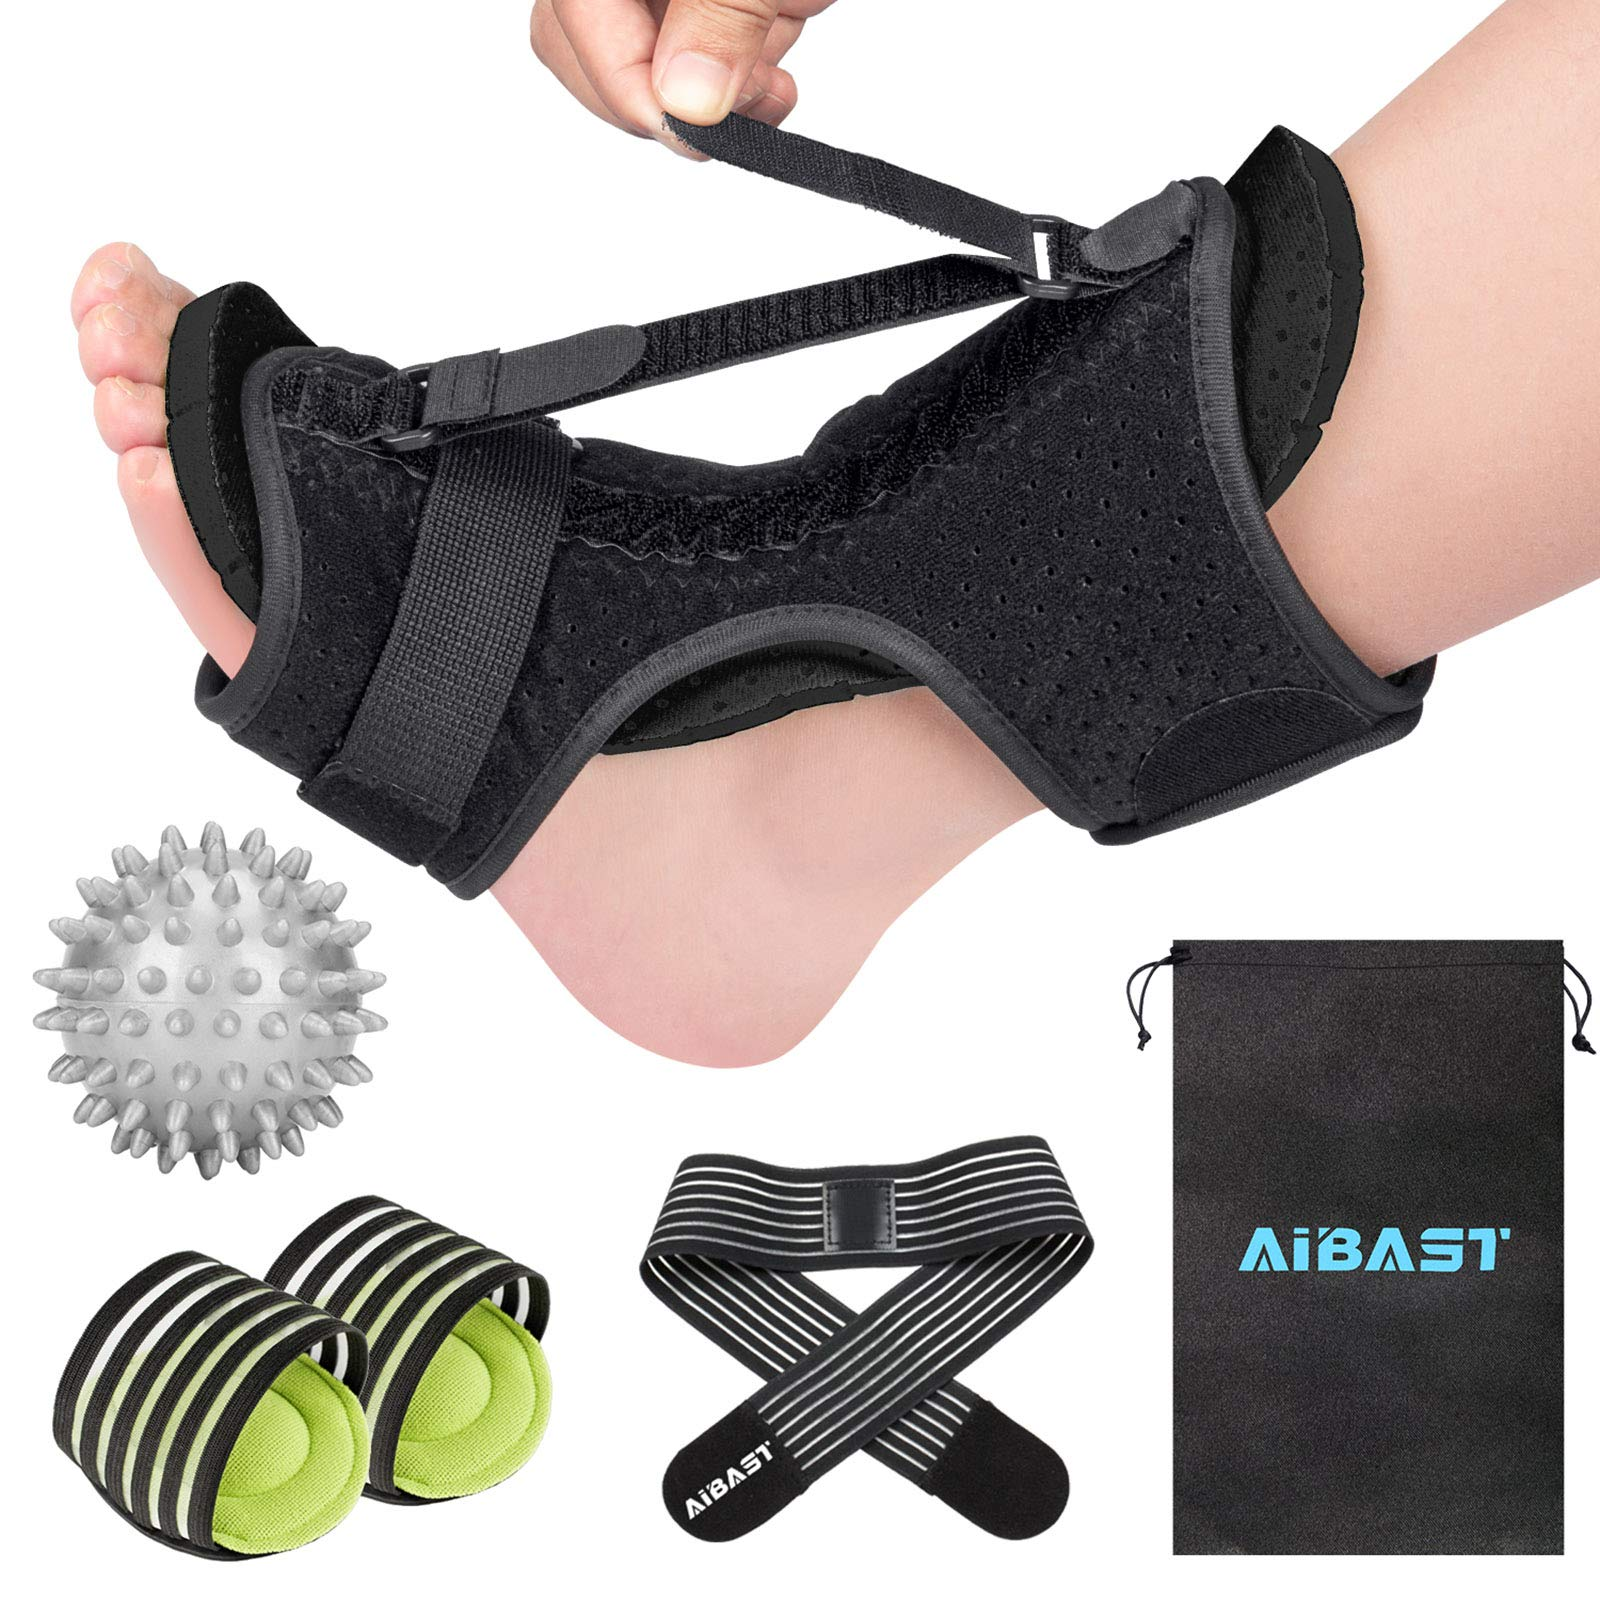 2020 New Upgraded Black Night Splint for Plantar Fascitis, AiBast Adjustable Ankle Brace Foot Drop Orthotic Brace for Plantar Fasciitis, Arch Foot Pain, Achilles Tendonitis Support for Women, Men